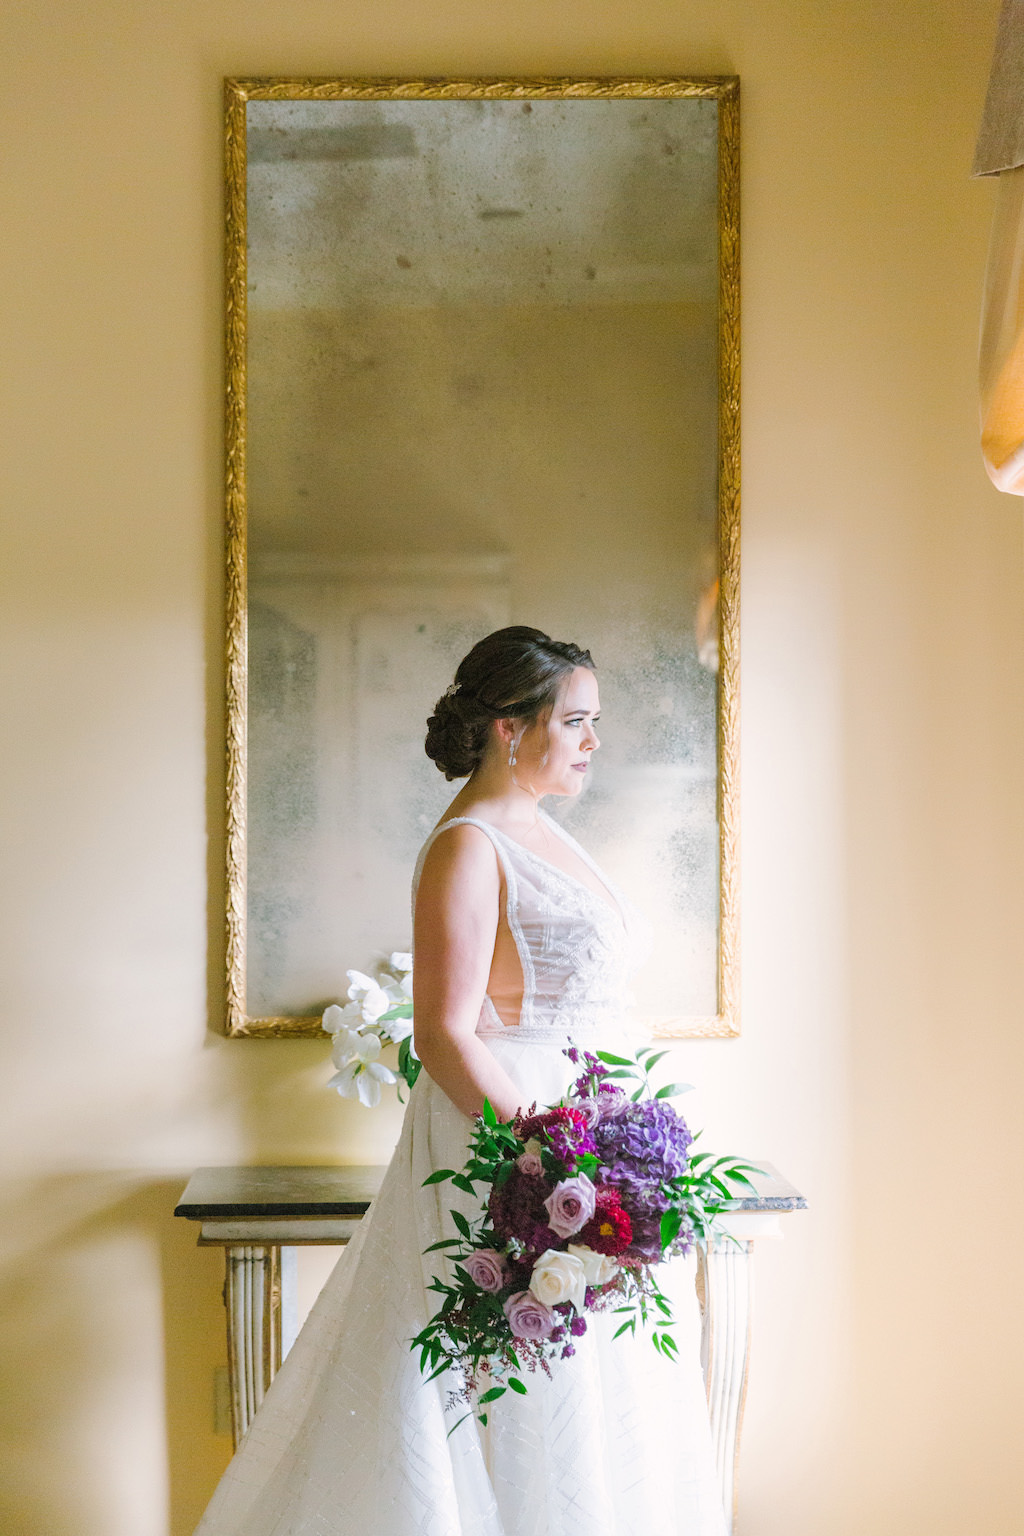 Indoor Bridal Portrait in Calla Blanche V Neck Lace Wedding Dress, with Purple, Magenta, and White Bouquet with Greenery